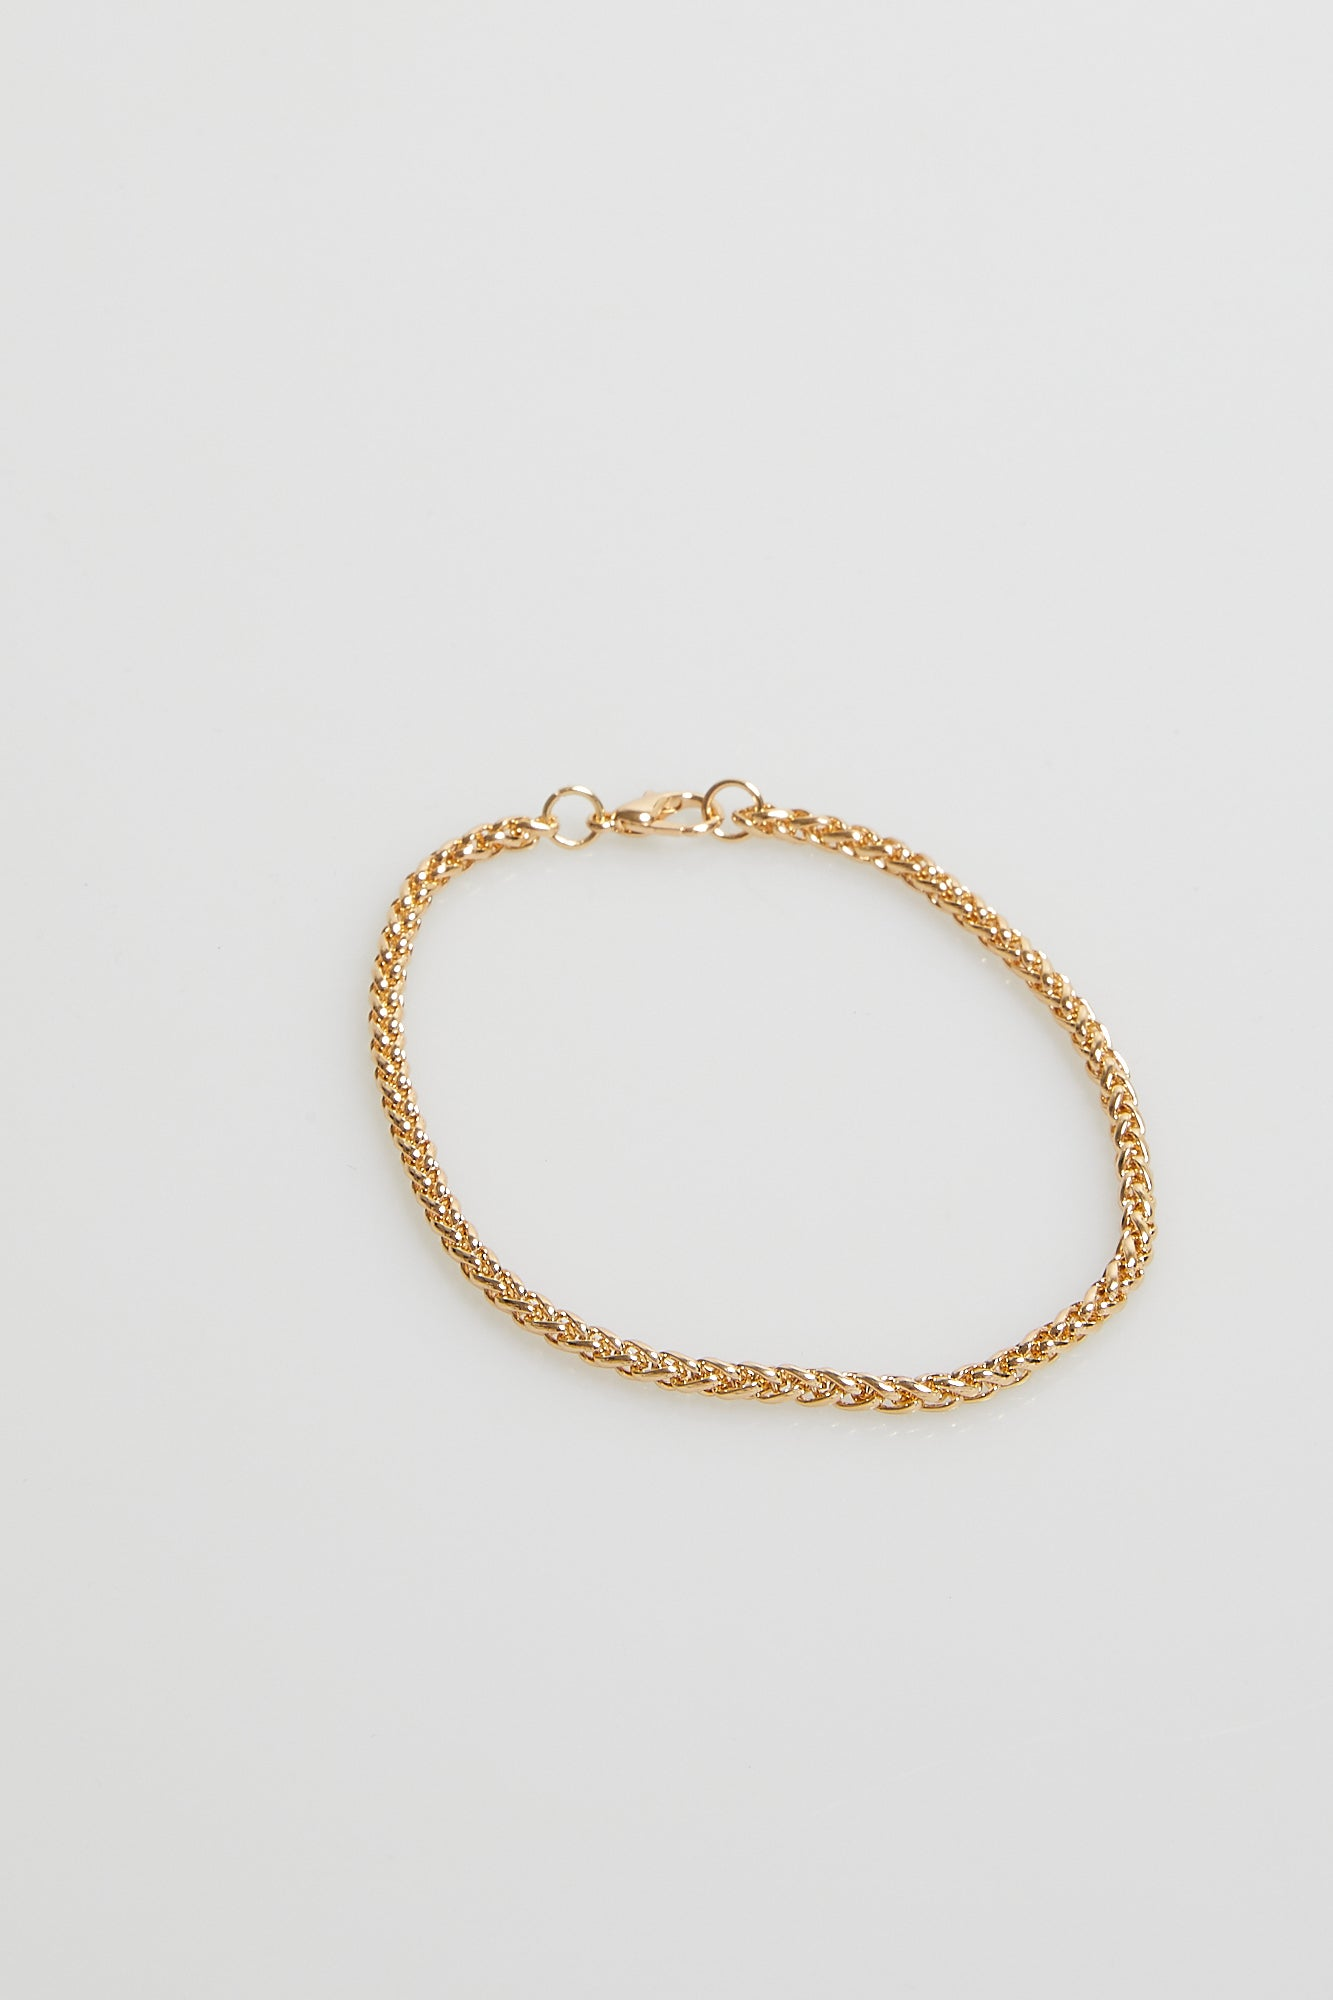 NTH Chain Bracelet Gold NTH20201030-2